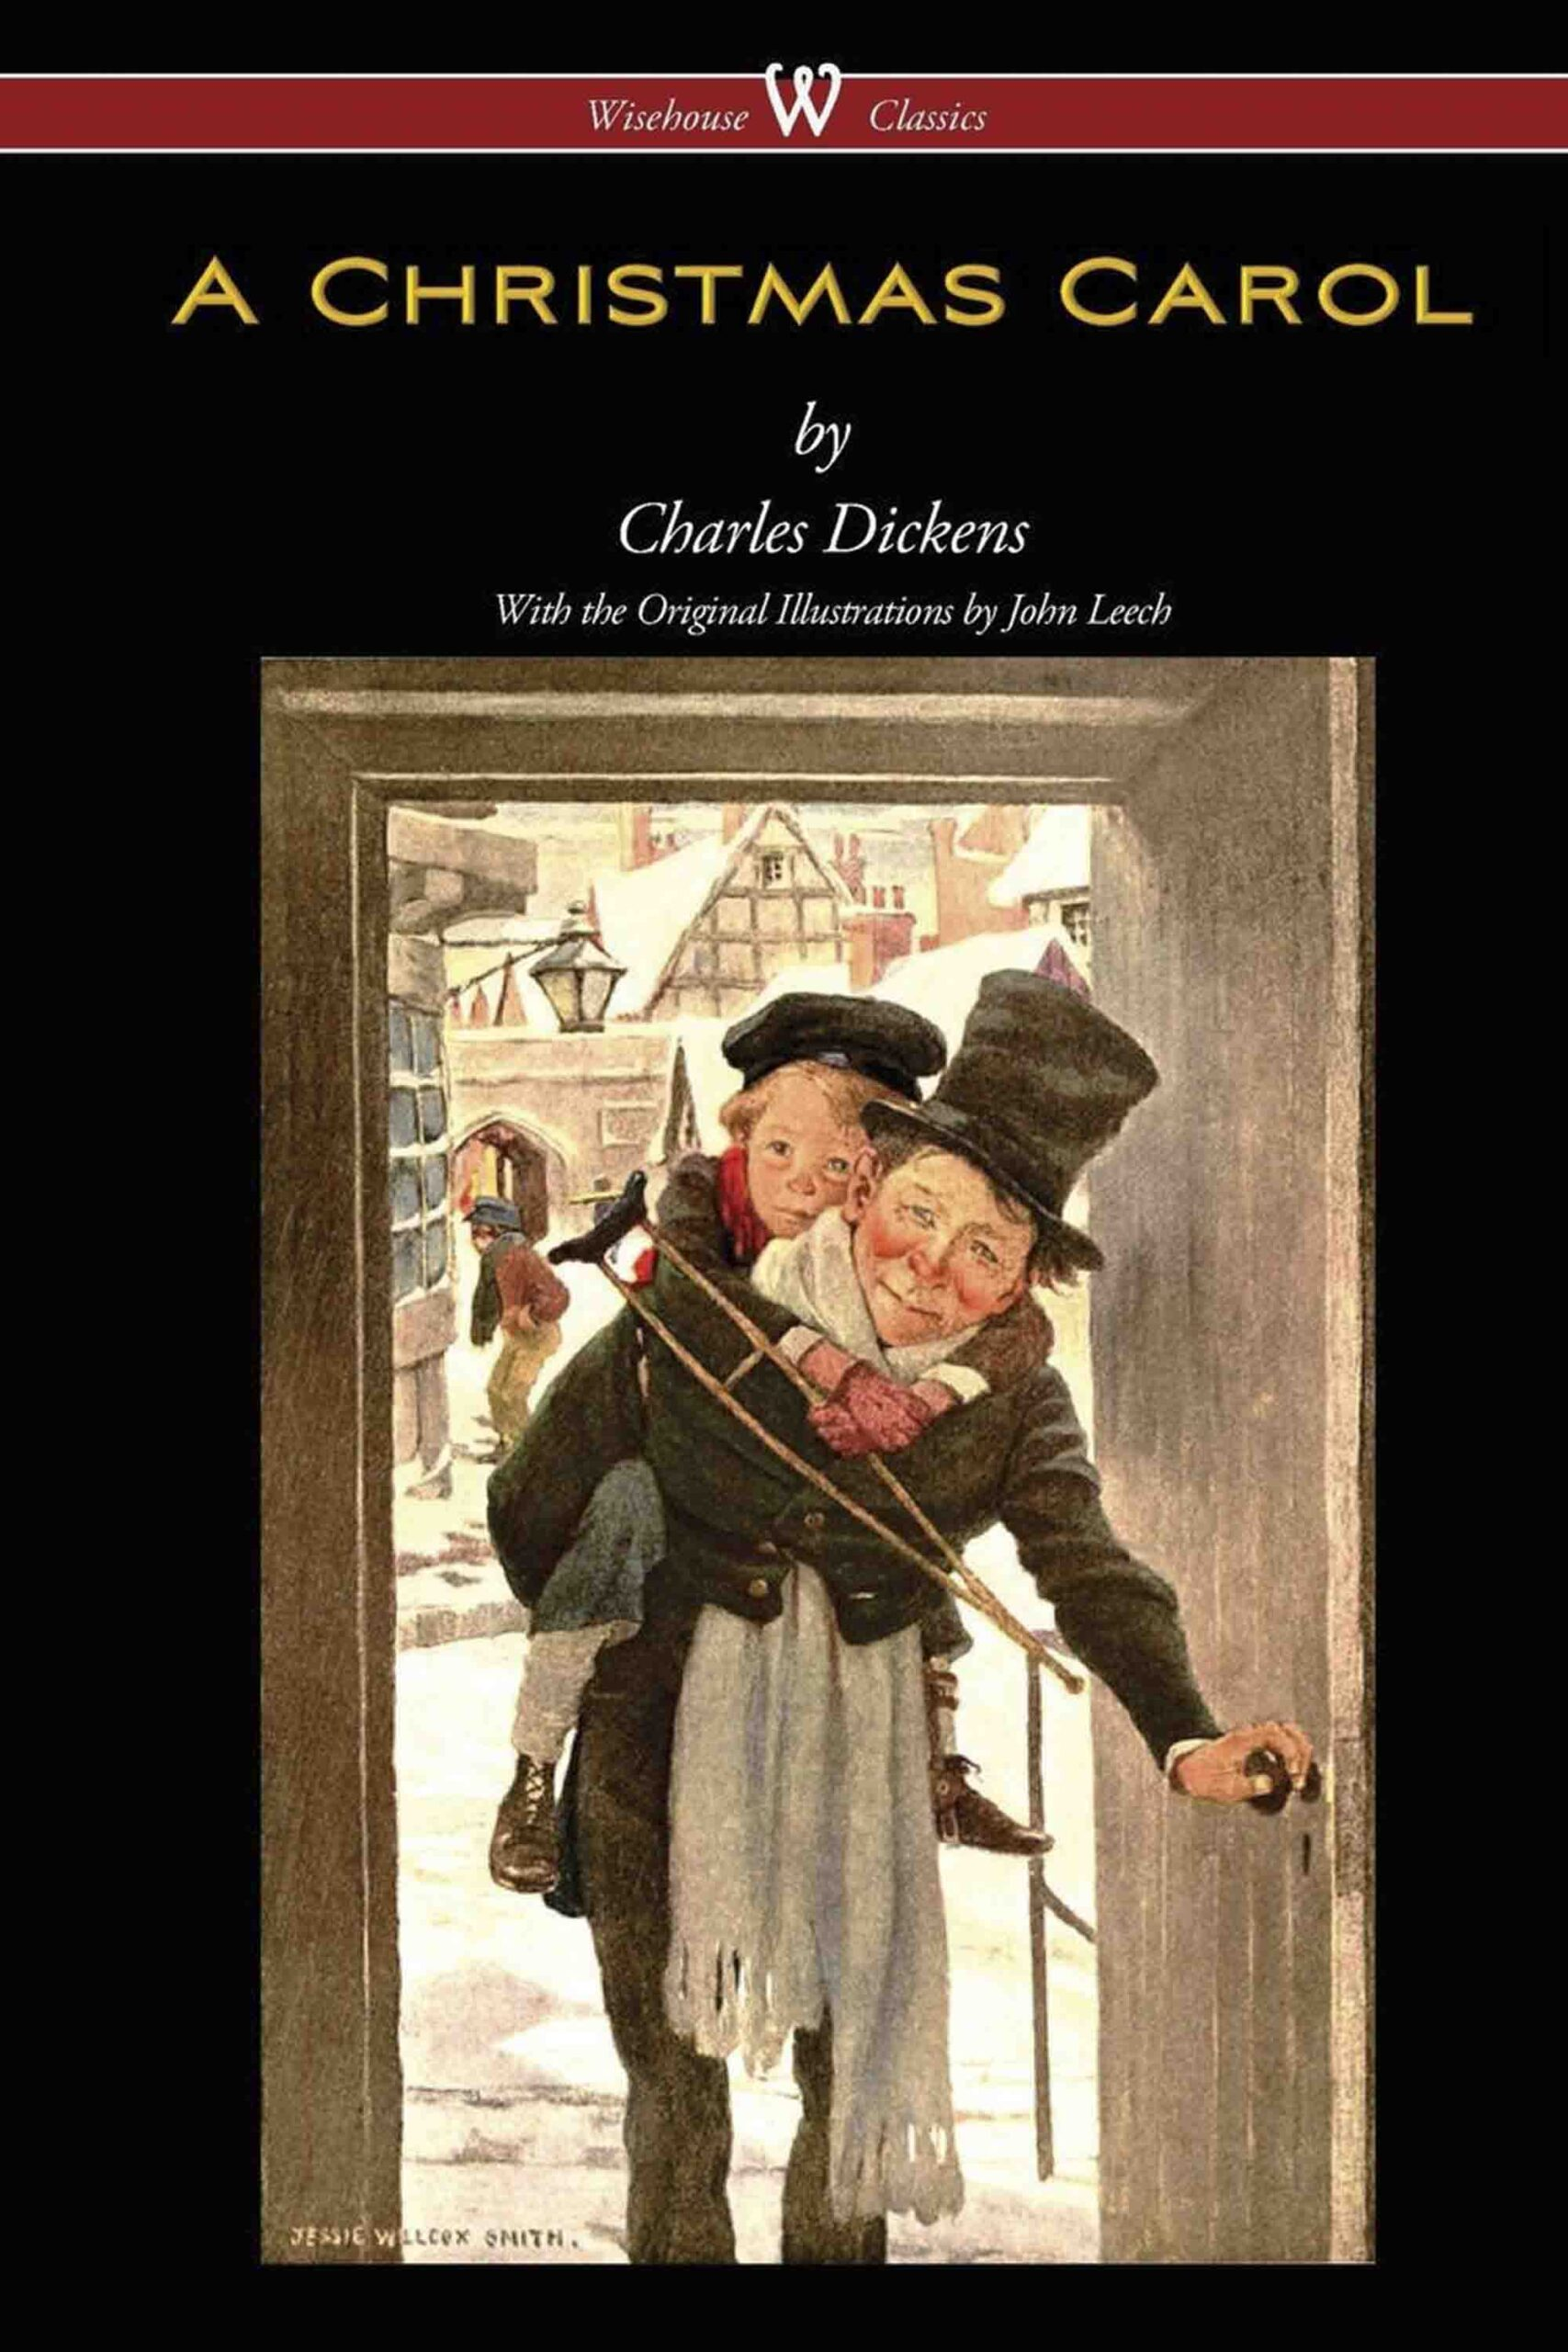 A Christmas Carol (Wisehouse Classics – with original illustrations)